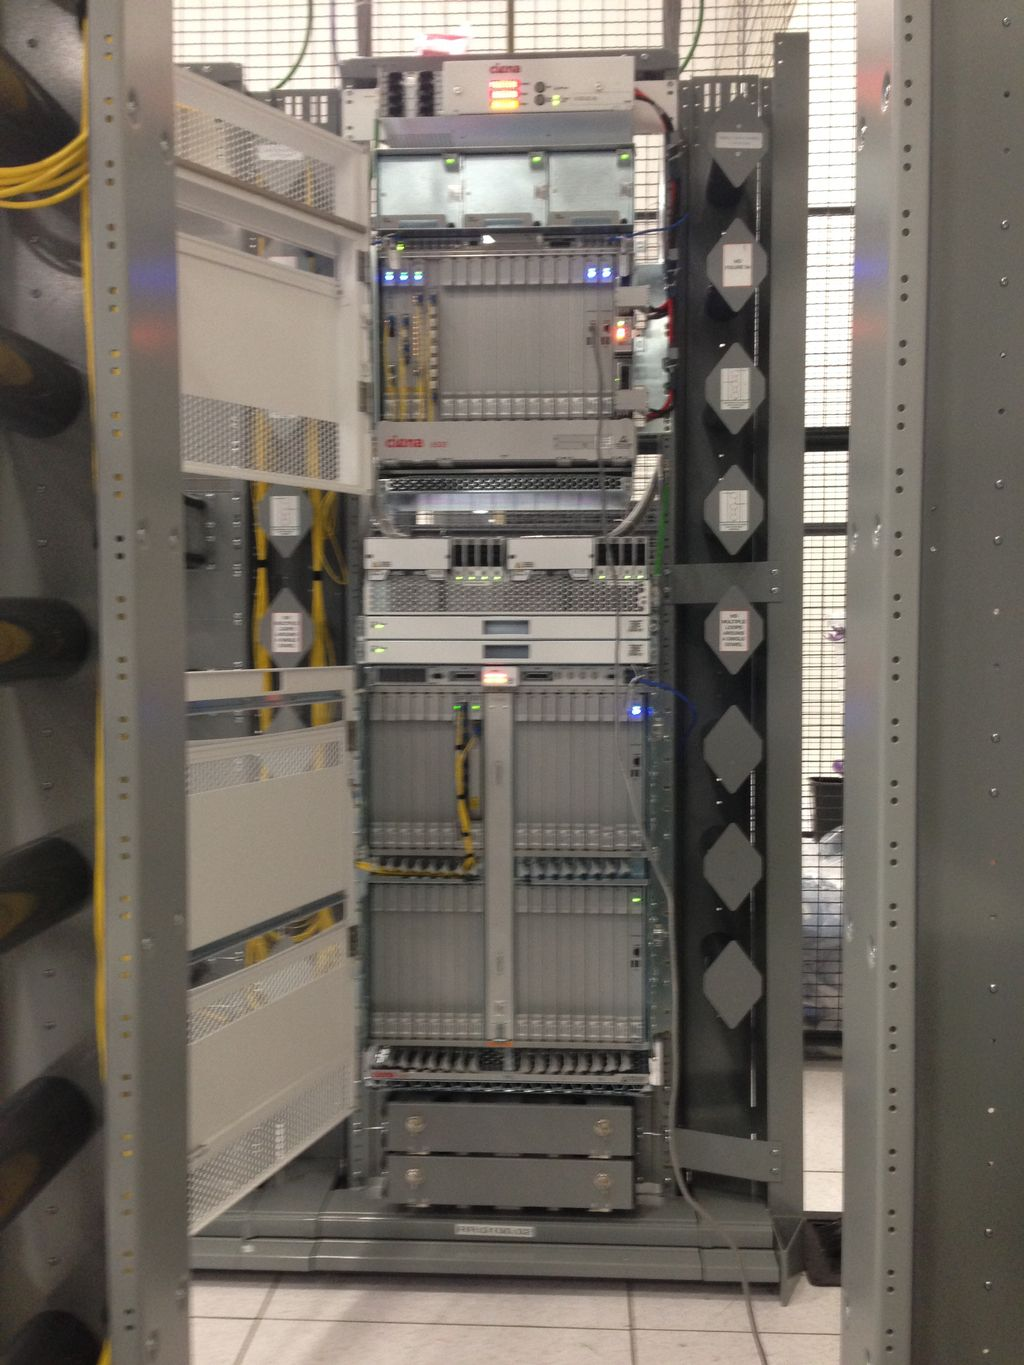 Installation of 2 Ciena 6500 Network Platforms